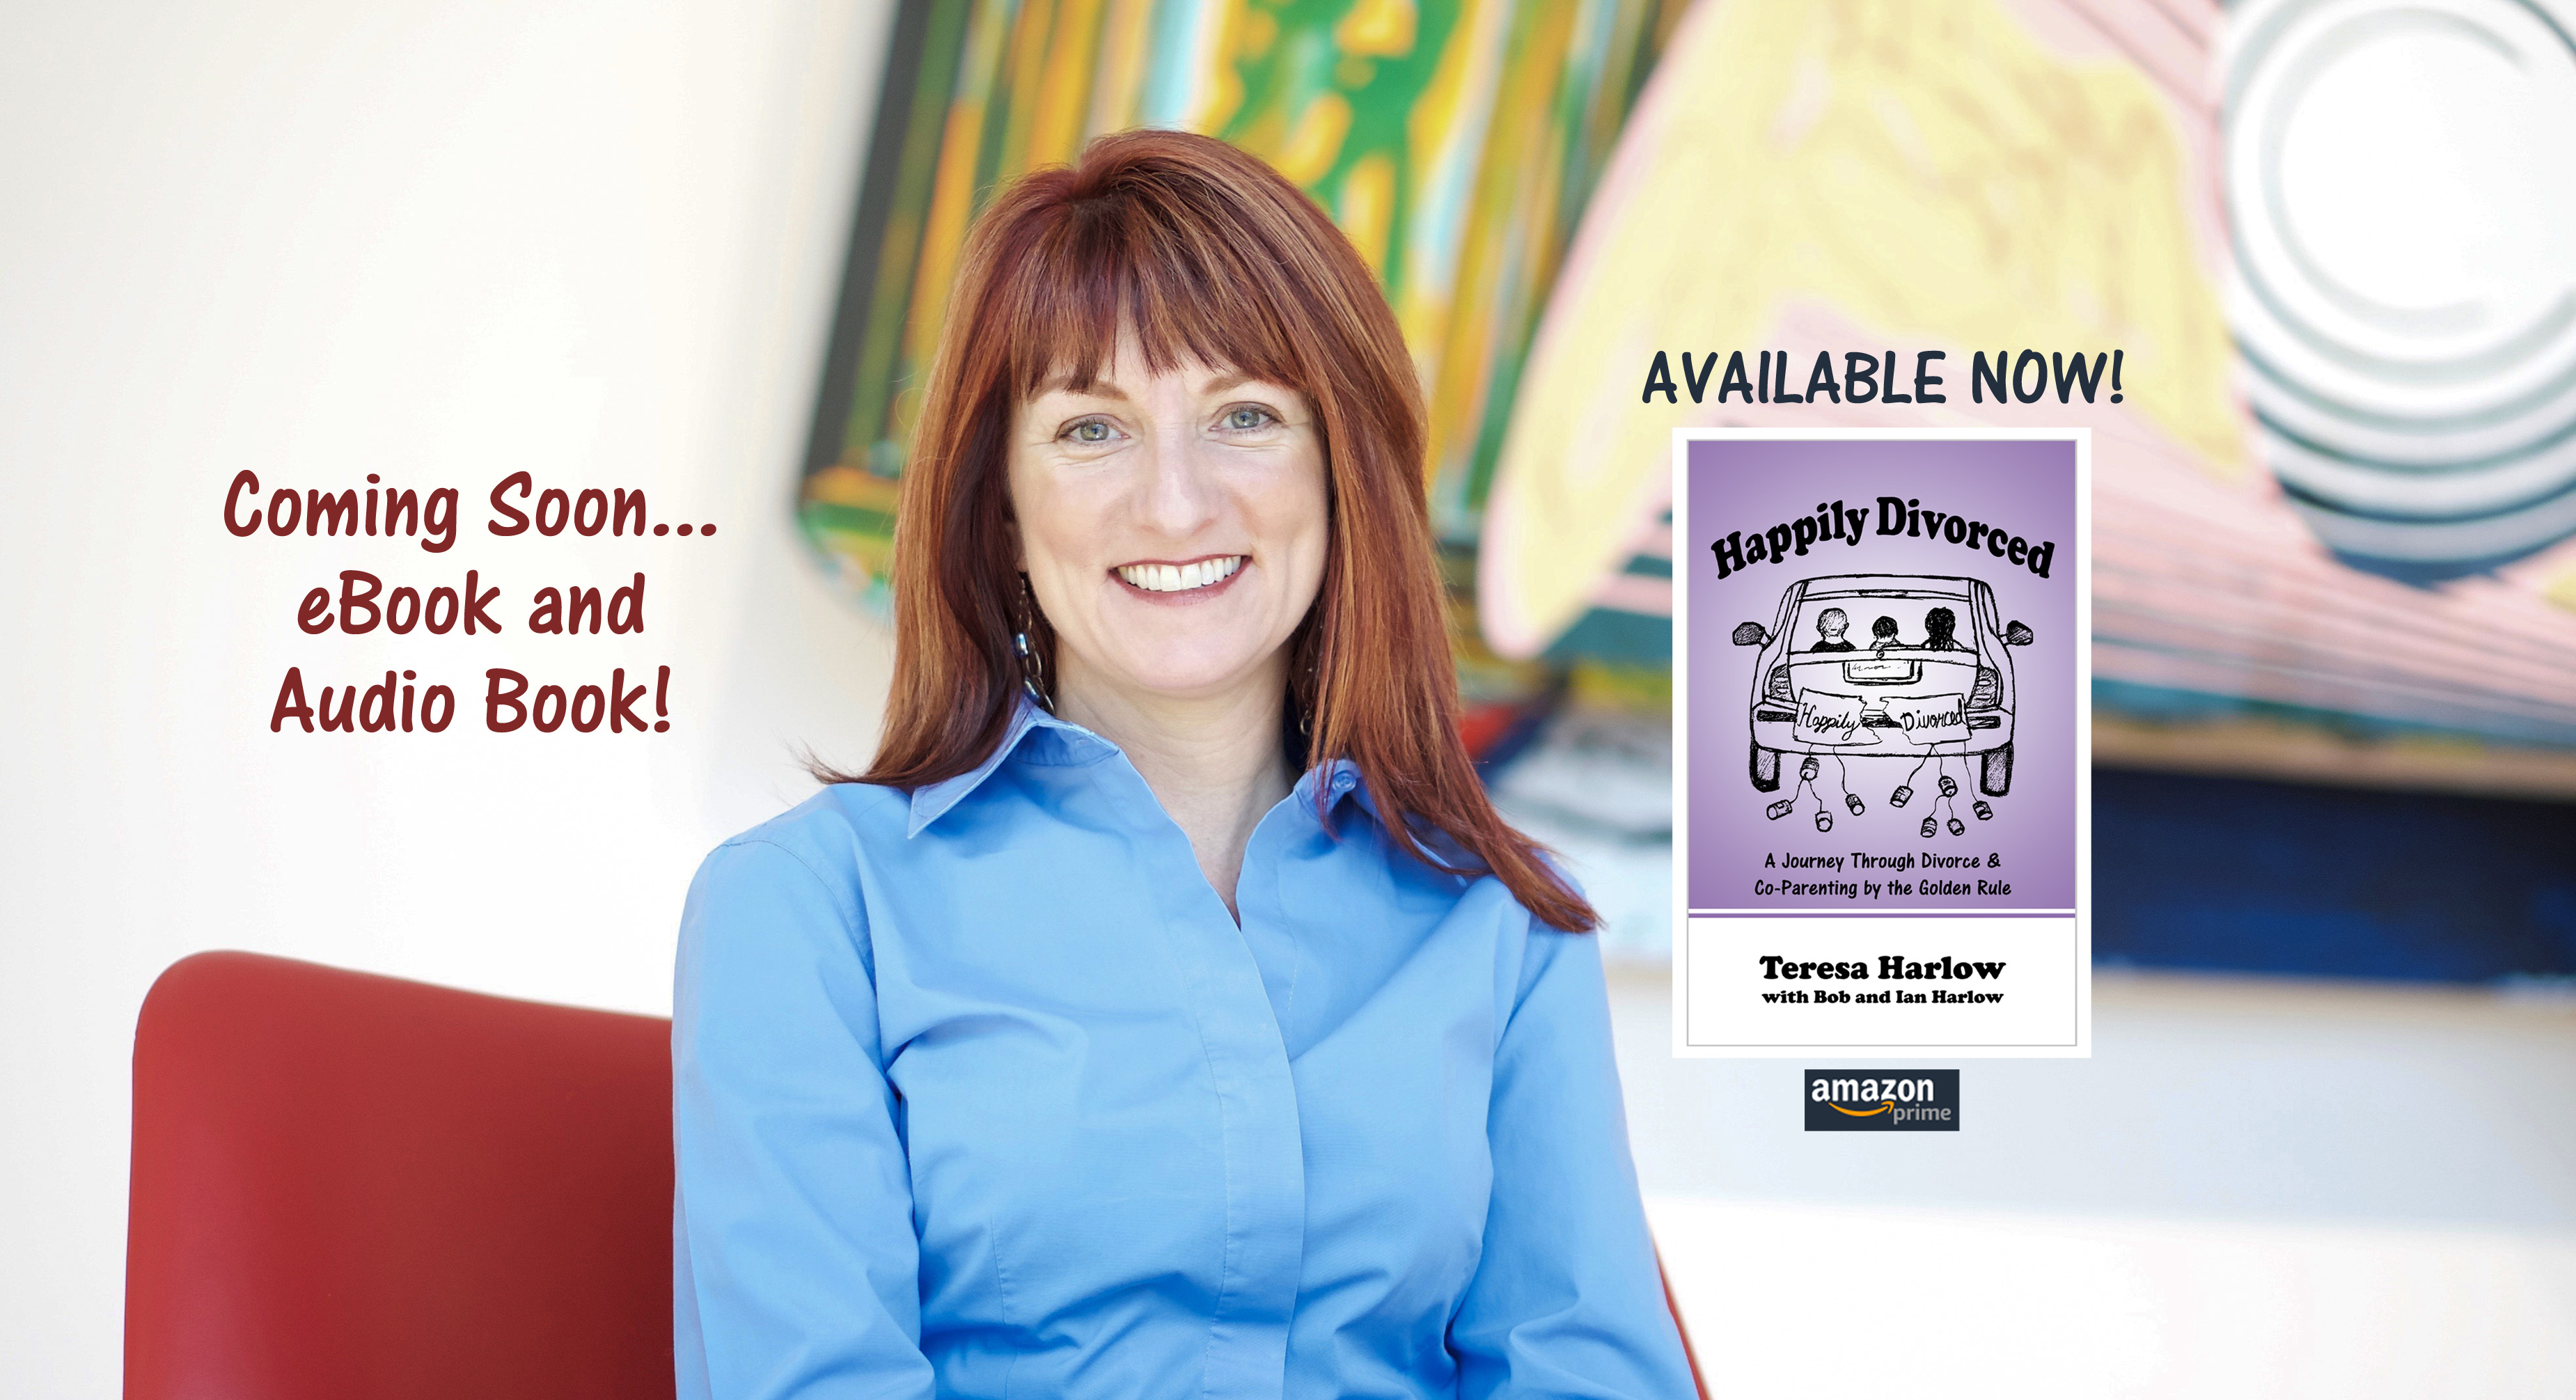 Happily Divorced available NOW!